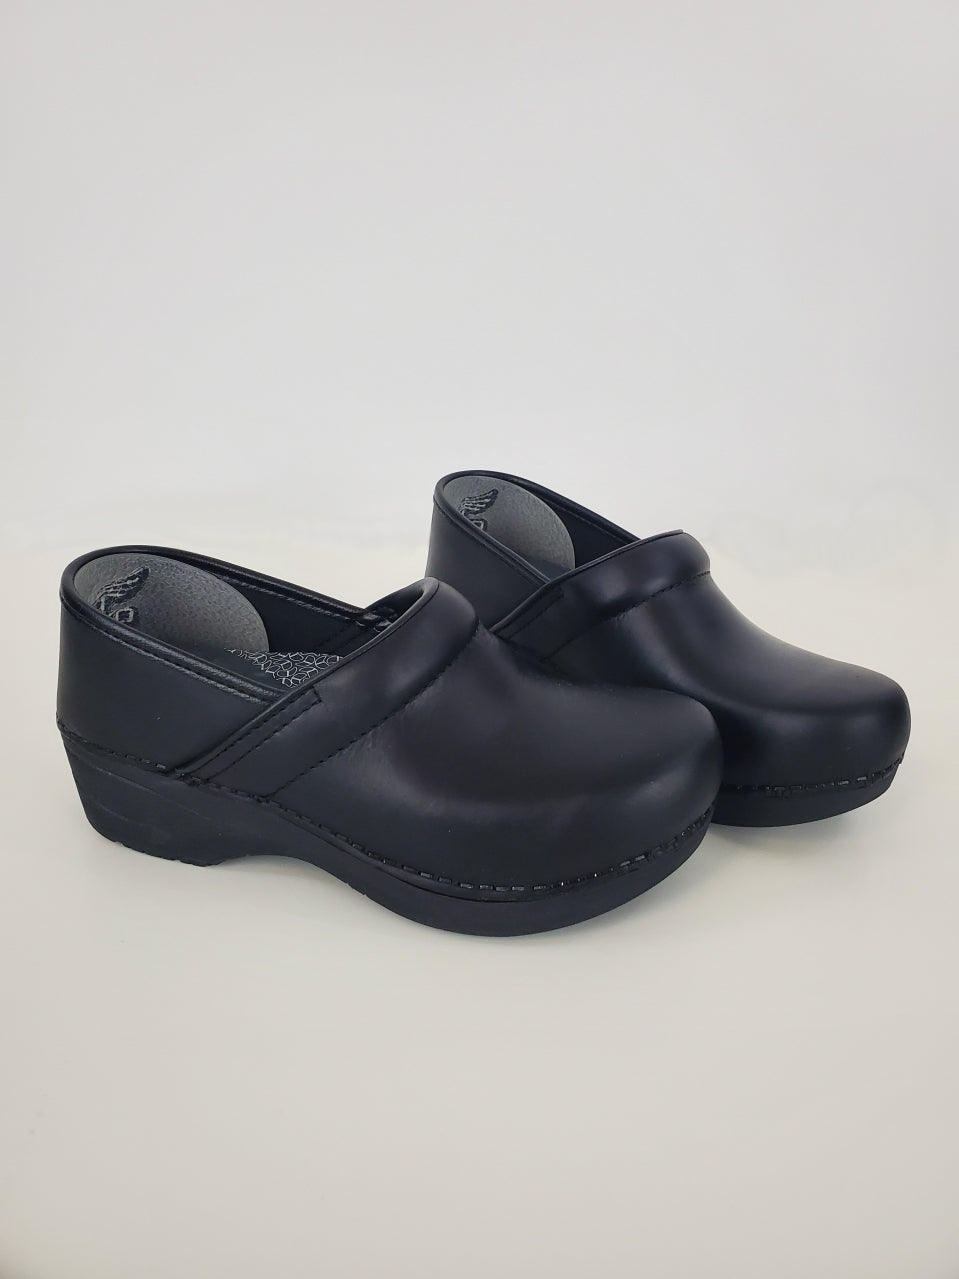 dansko xp 2.0 - black